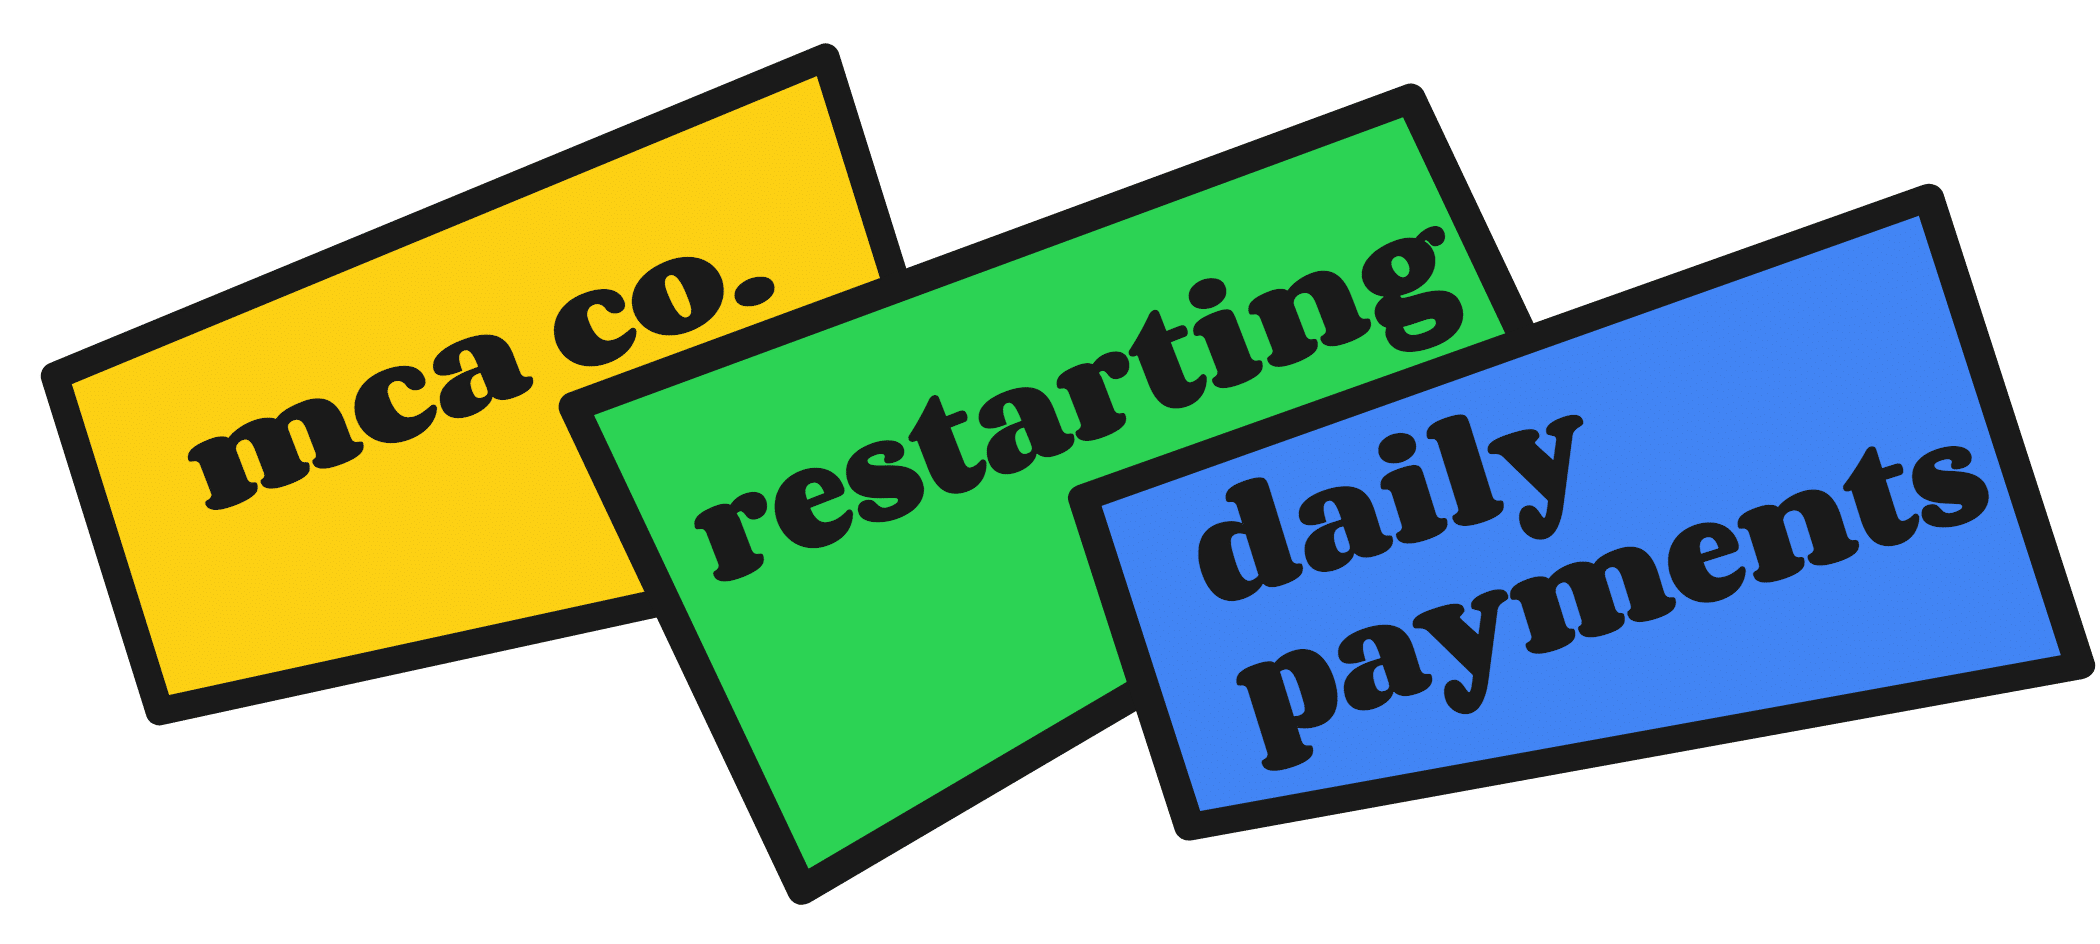 restarting daily payments